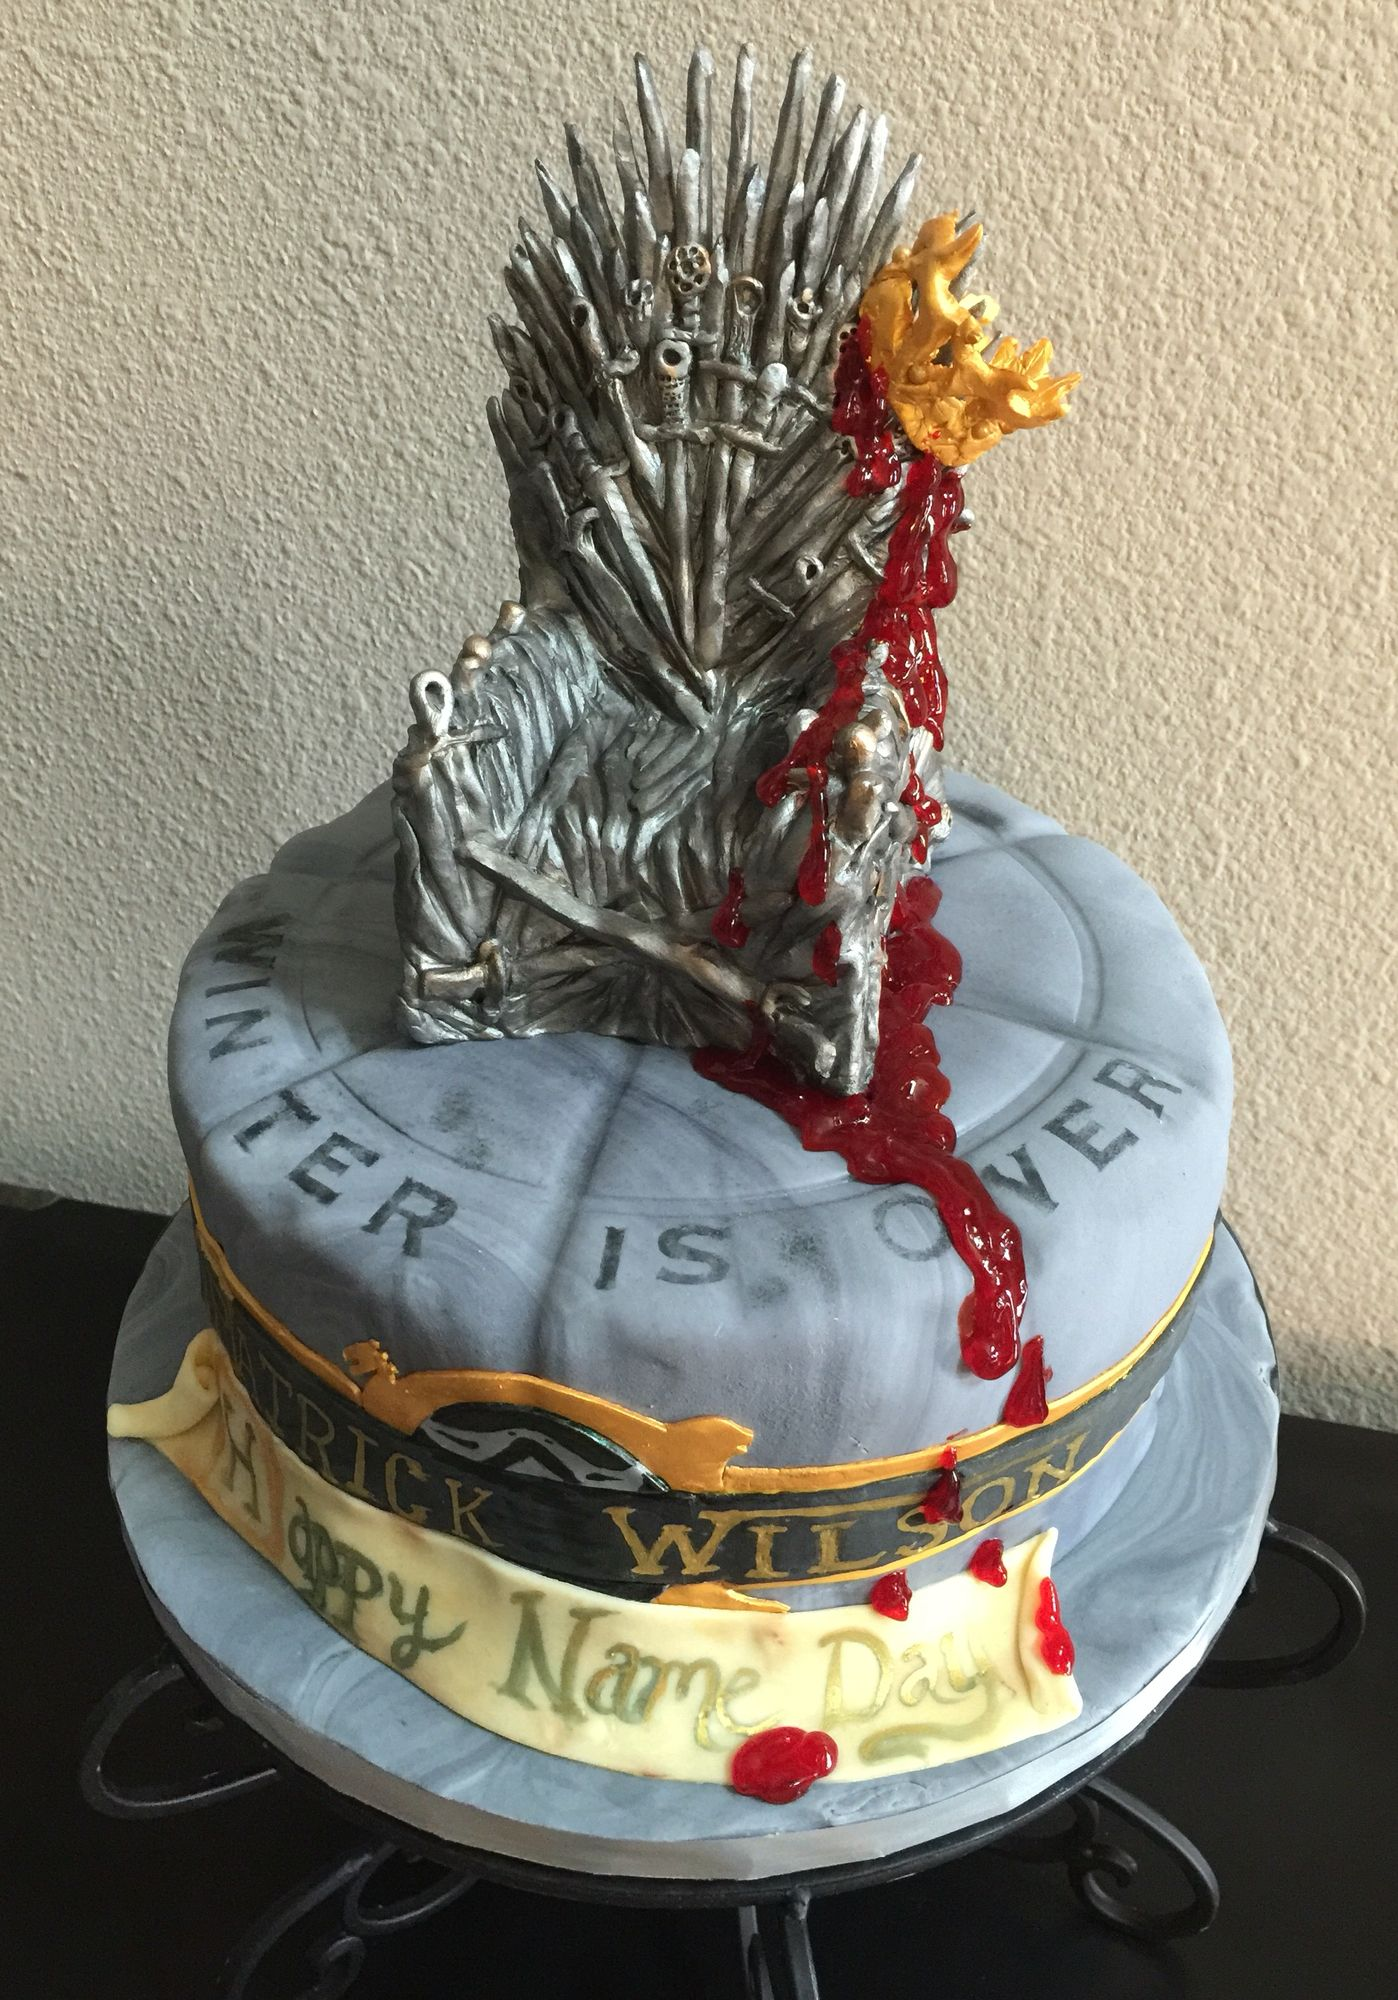 Game of thrones chair cake - The Iron Throne Cake From The Game Of Thrones